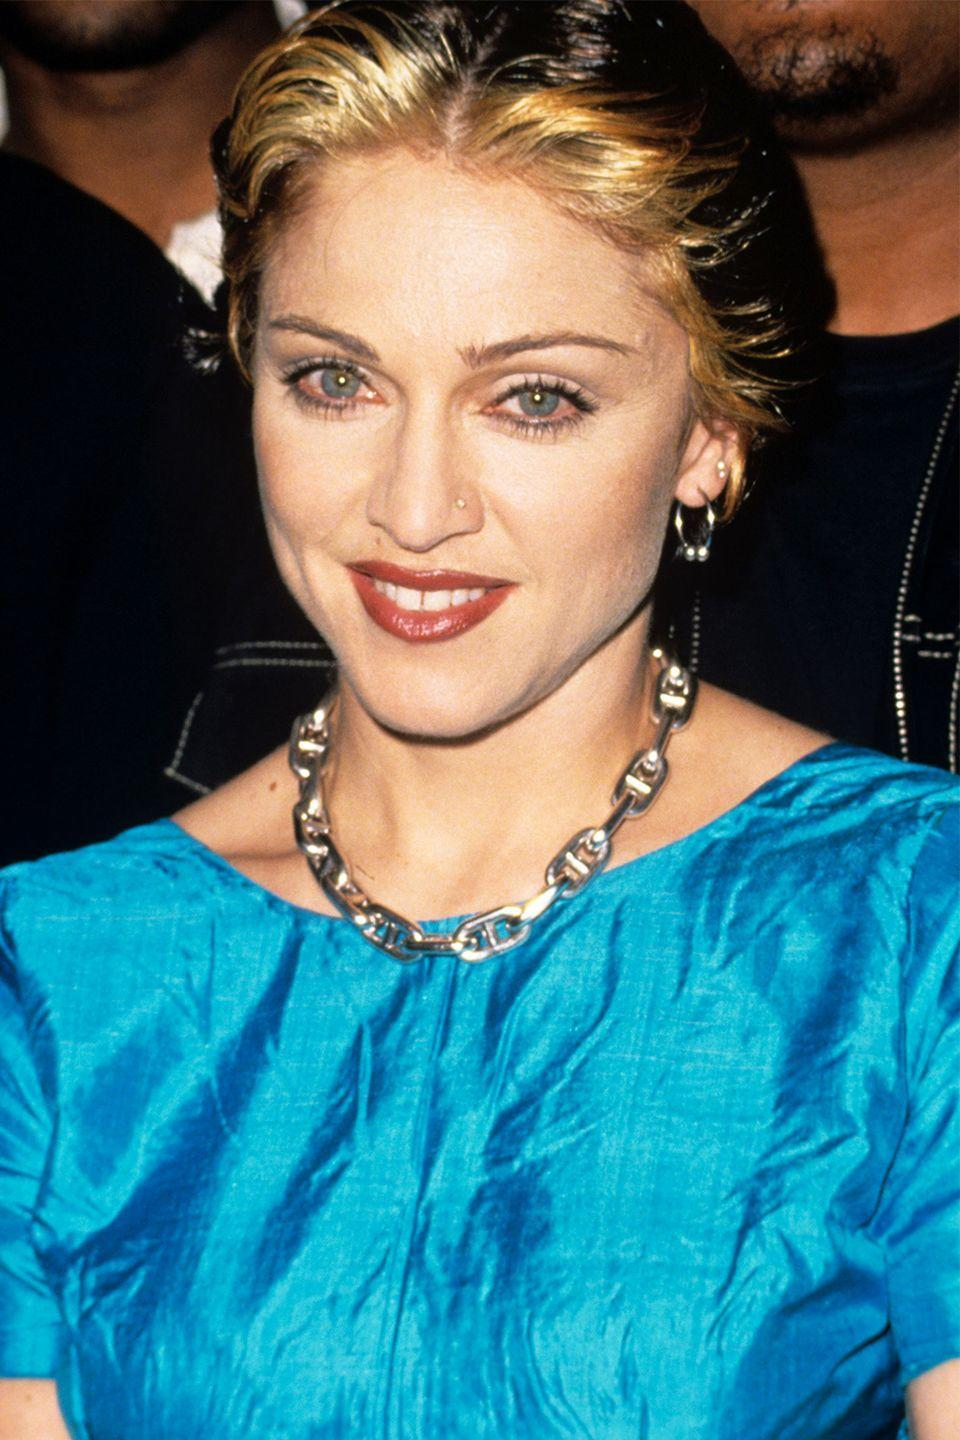 """<p>When Madonna is first greeted by David Letterman during <a href=""""https://www.youtube.com/watch?v=-ICwXuF7XKQ"""" rel=""""nofollow noopener"""" target=""""_blank"""" data-ylk=""""slk:this appearance on his talk show"""" class=""""link rapid-noclick-resp"""">this appearance on his talk show</a>, she sneakily shakes his hand, <span class=""""redactor-unlink"""">passing off her underwear</span> (or a pair of underwear) to him. Right from the start Madonna called the TV show host a """"sick fuck""""—but in a playful way, acknowledging the fact that he's always asking about her sex life.</p>"""